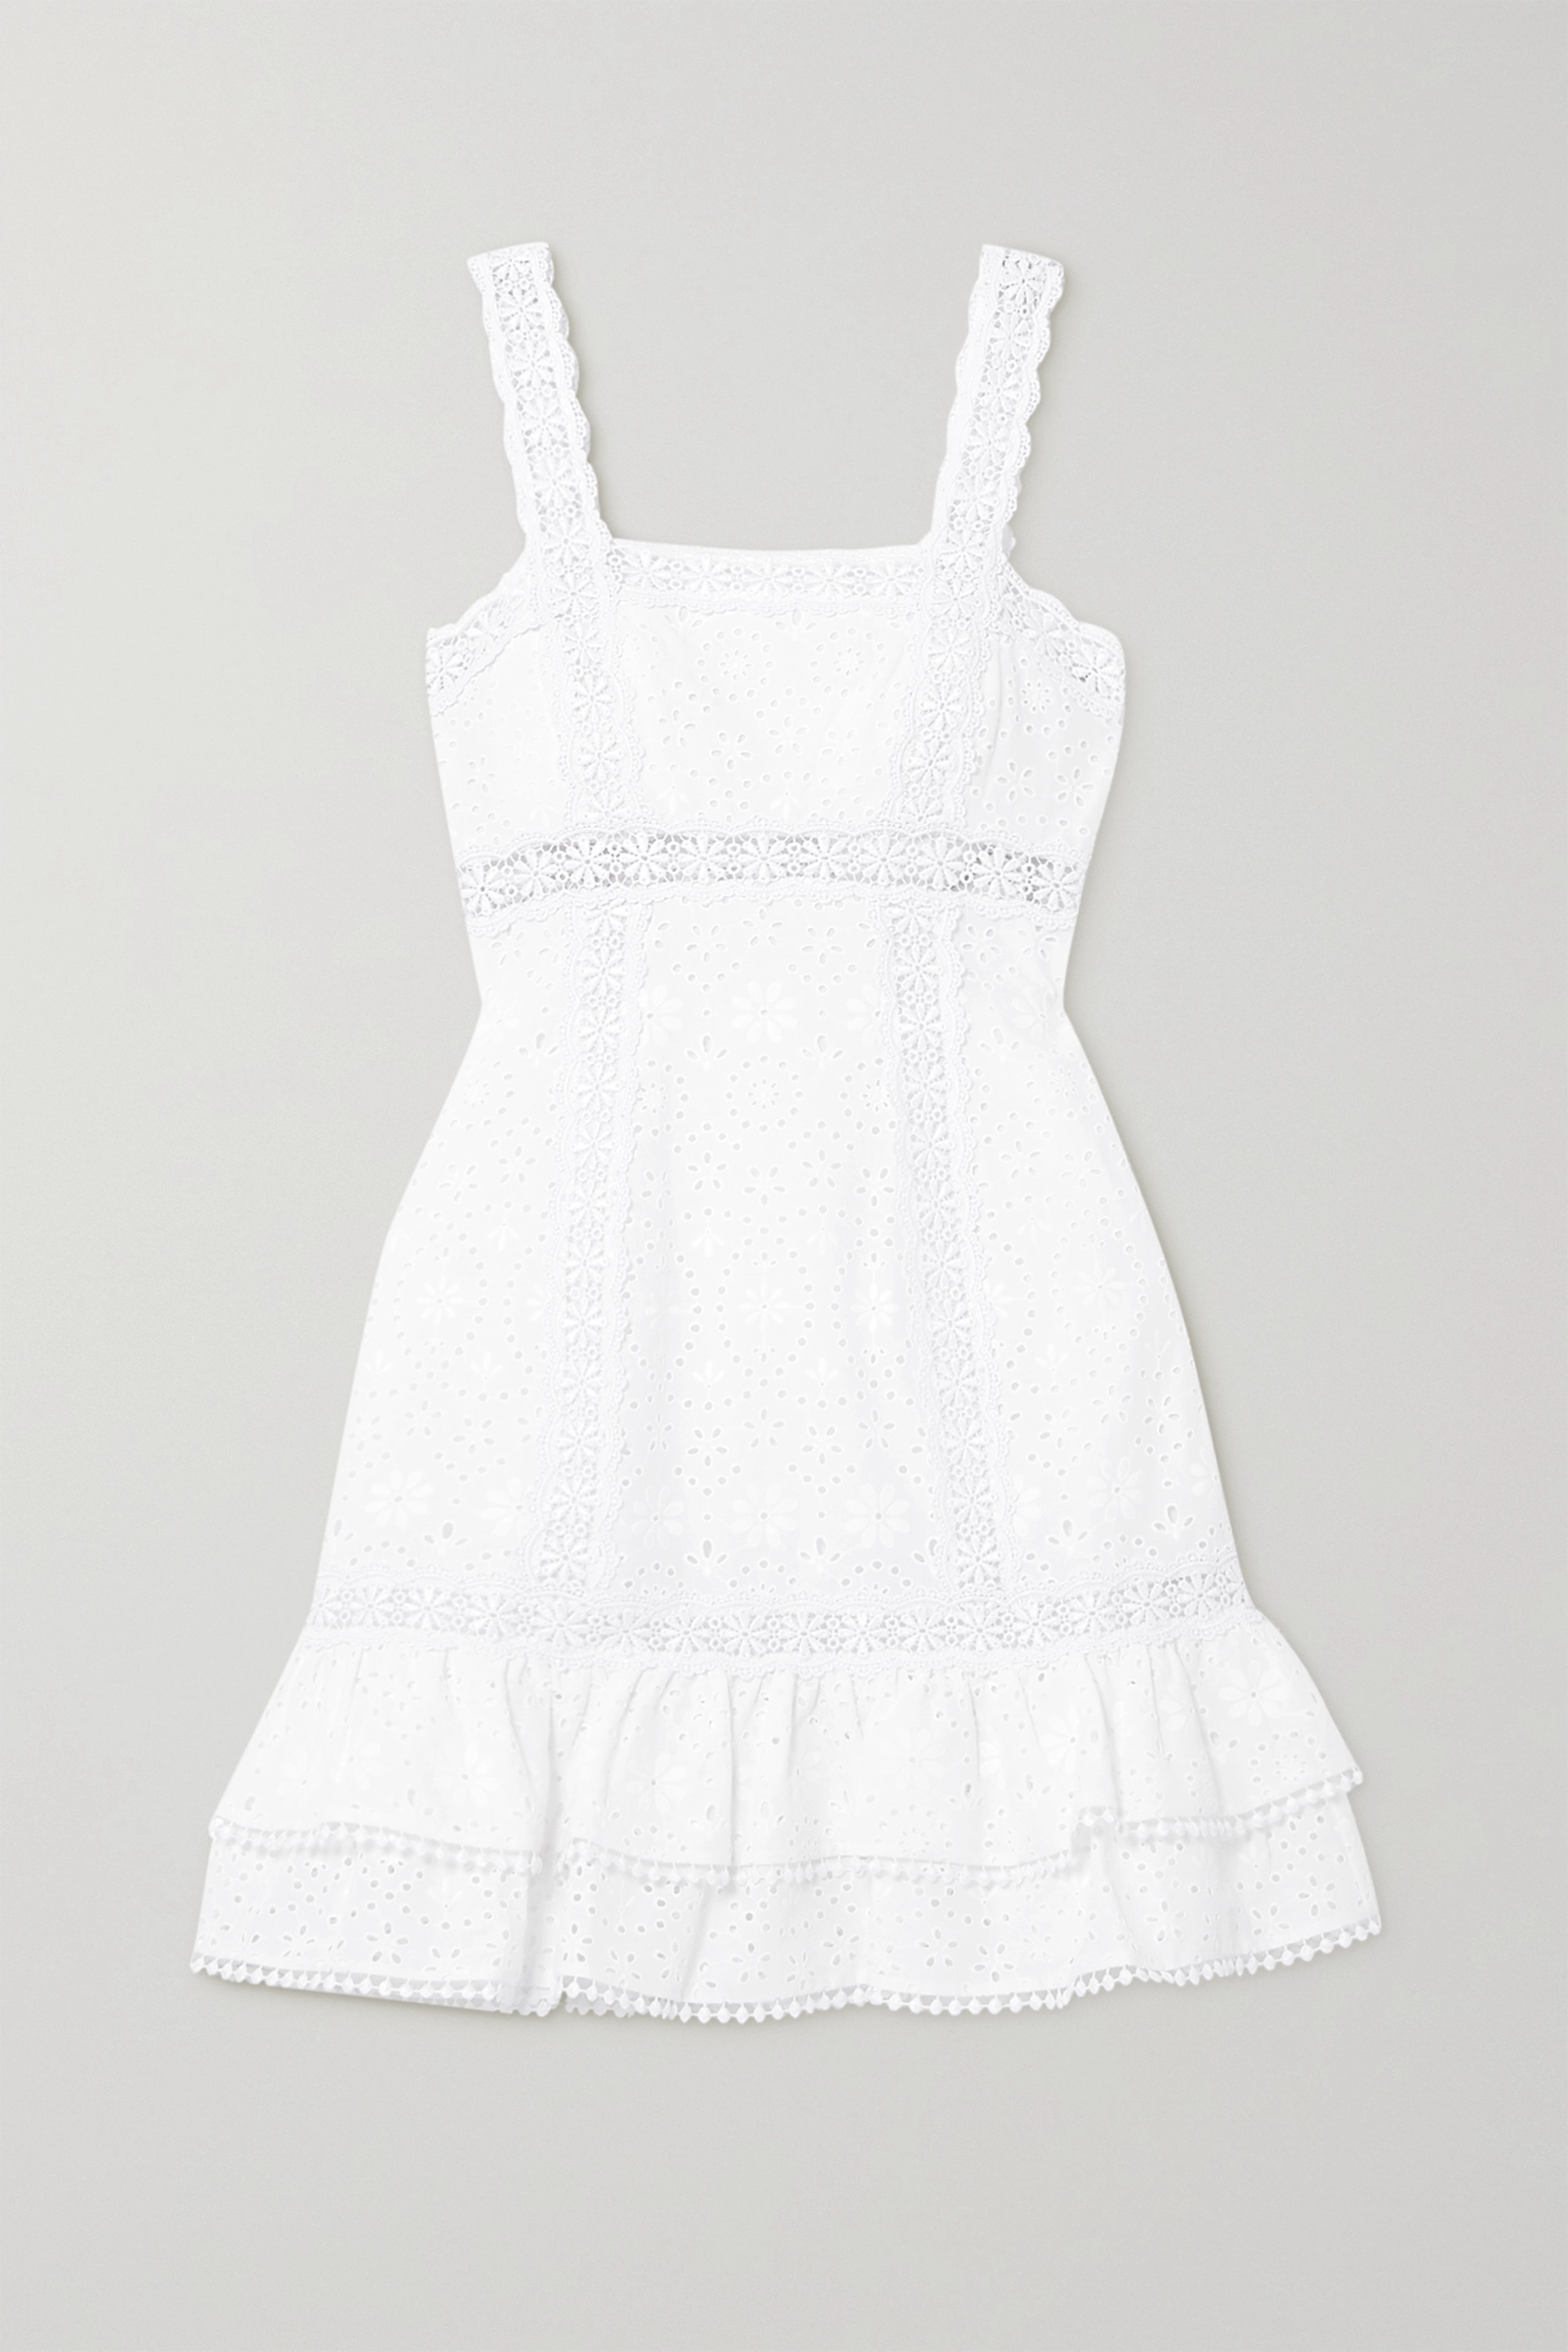 Charo Ruiz Nawa crocheted lace-trimmed broderie anglaise cotton-blend mini dress